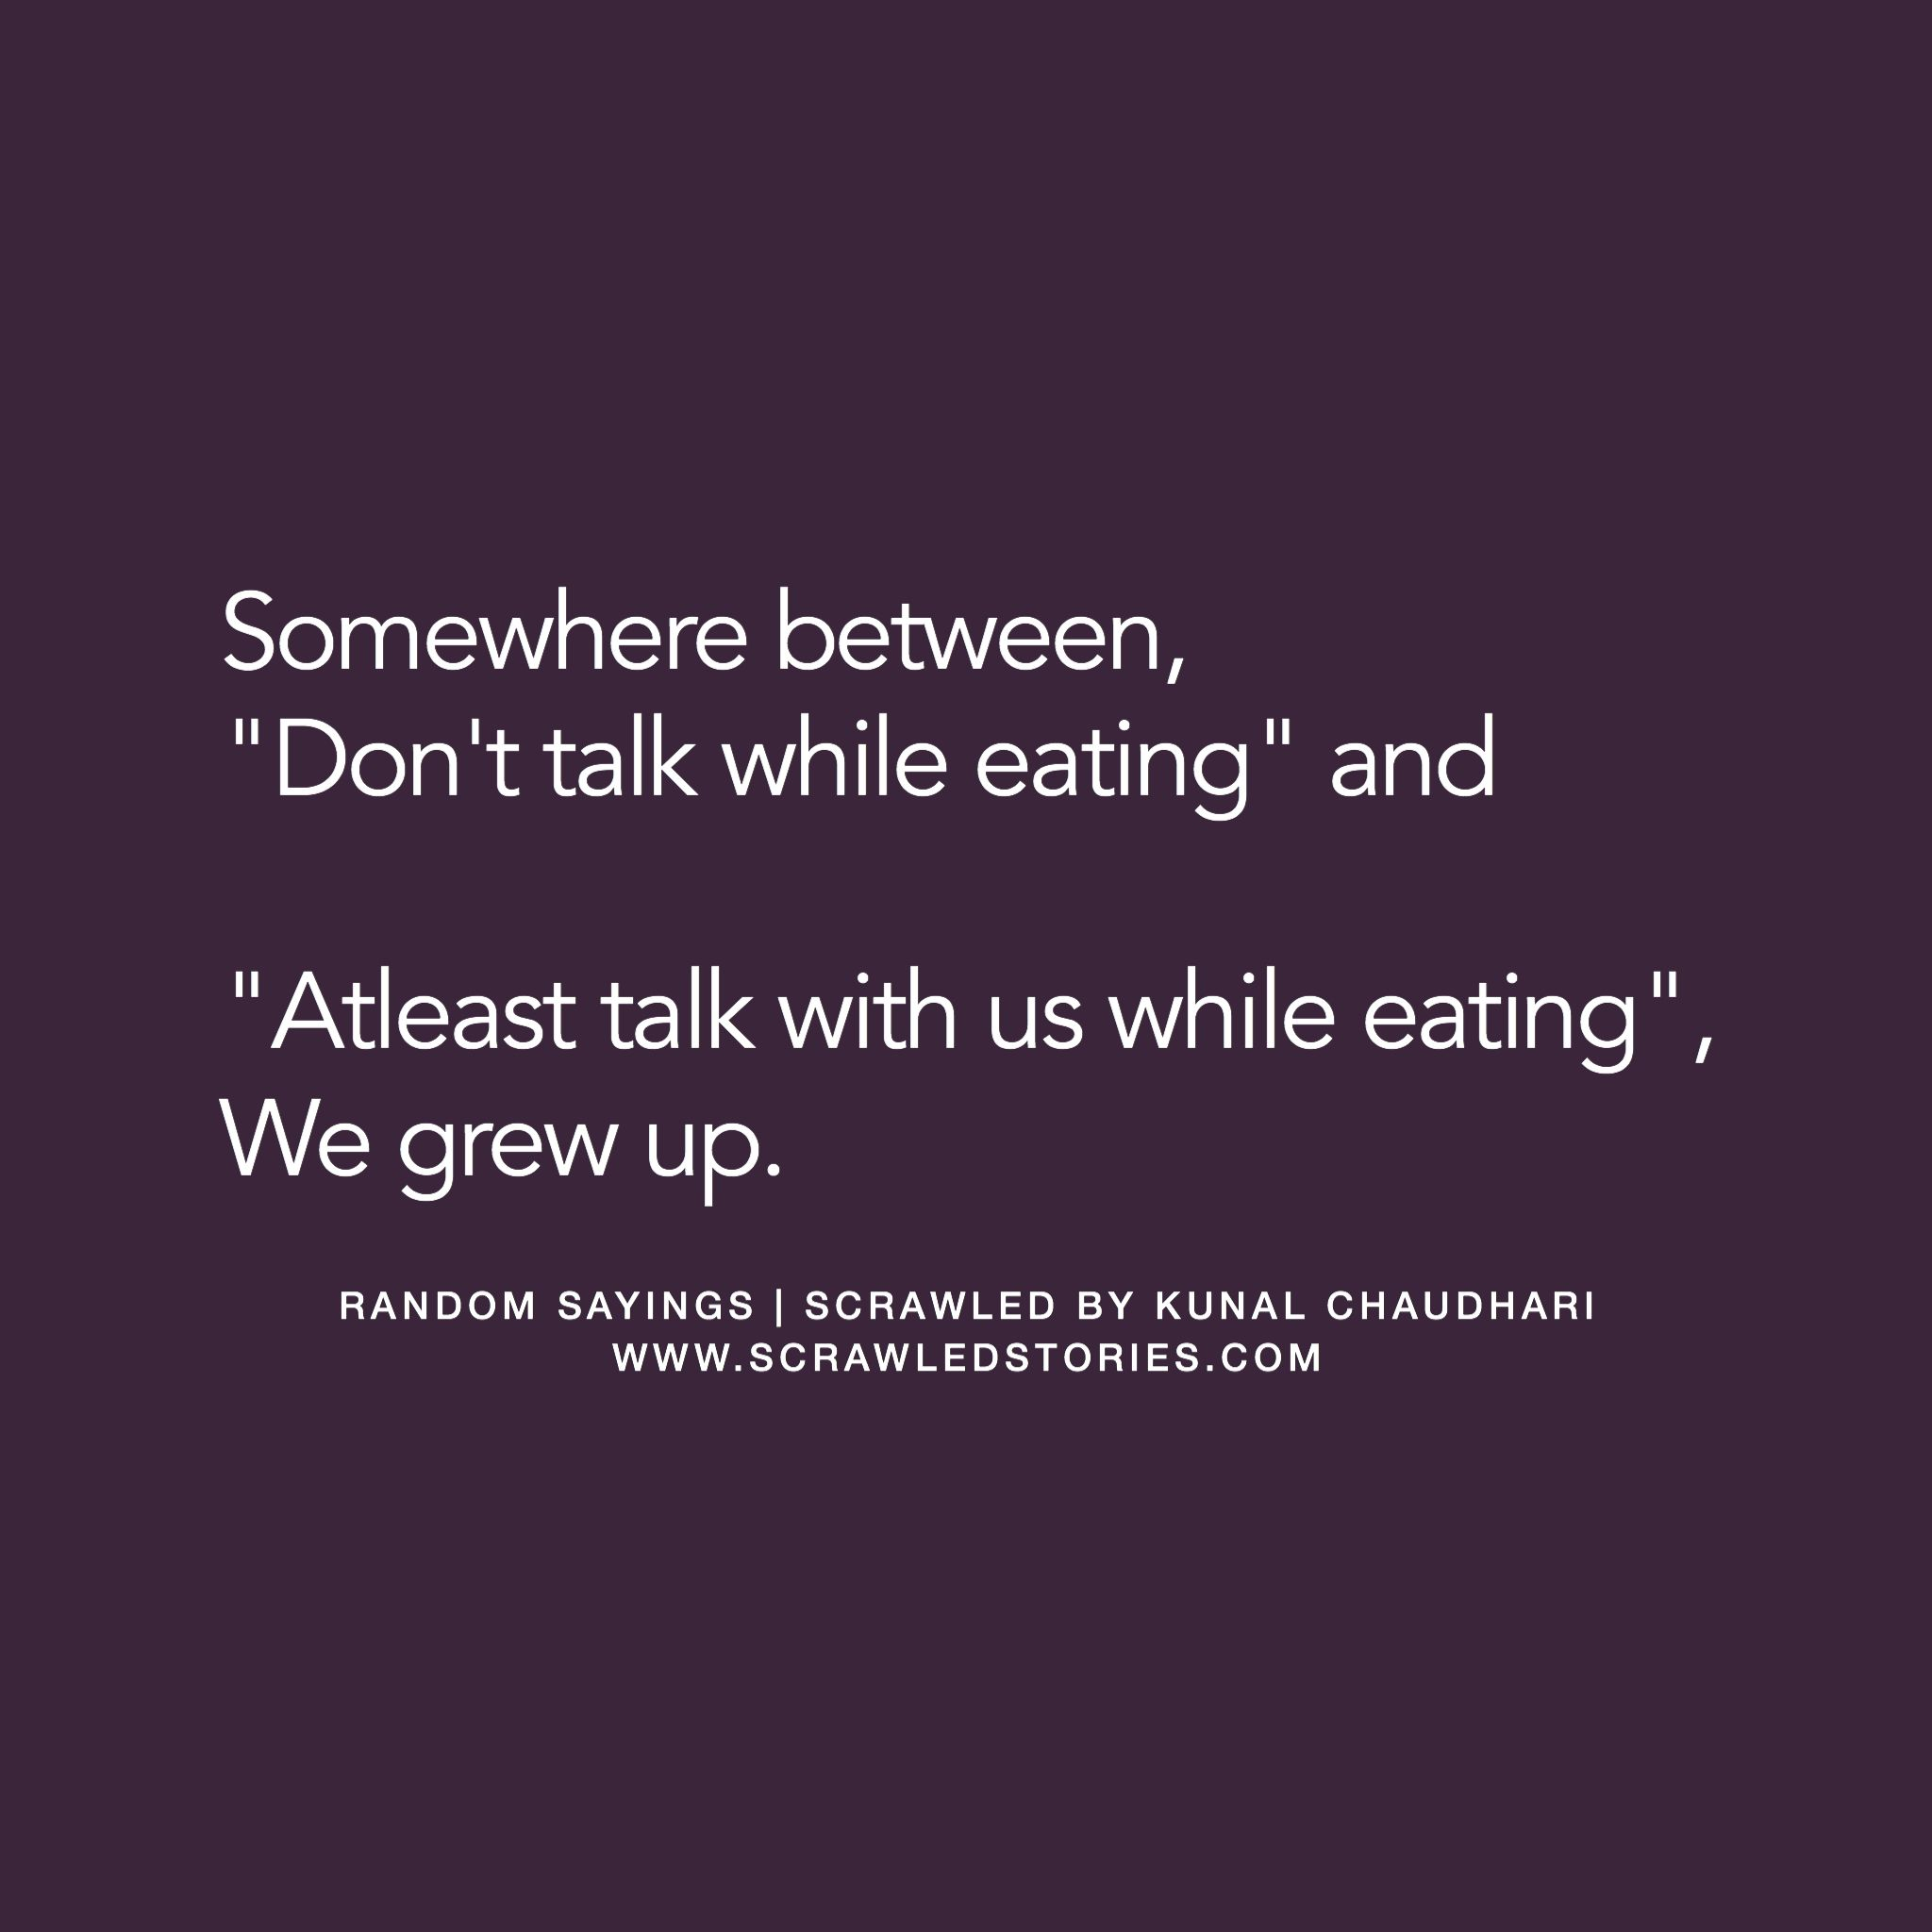 A Life Is In Between These Two Sentences From Childhood To The Adulthood Scrawled Stories Heartfelt Quotes Memories Quotes Reality Quotes